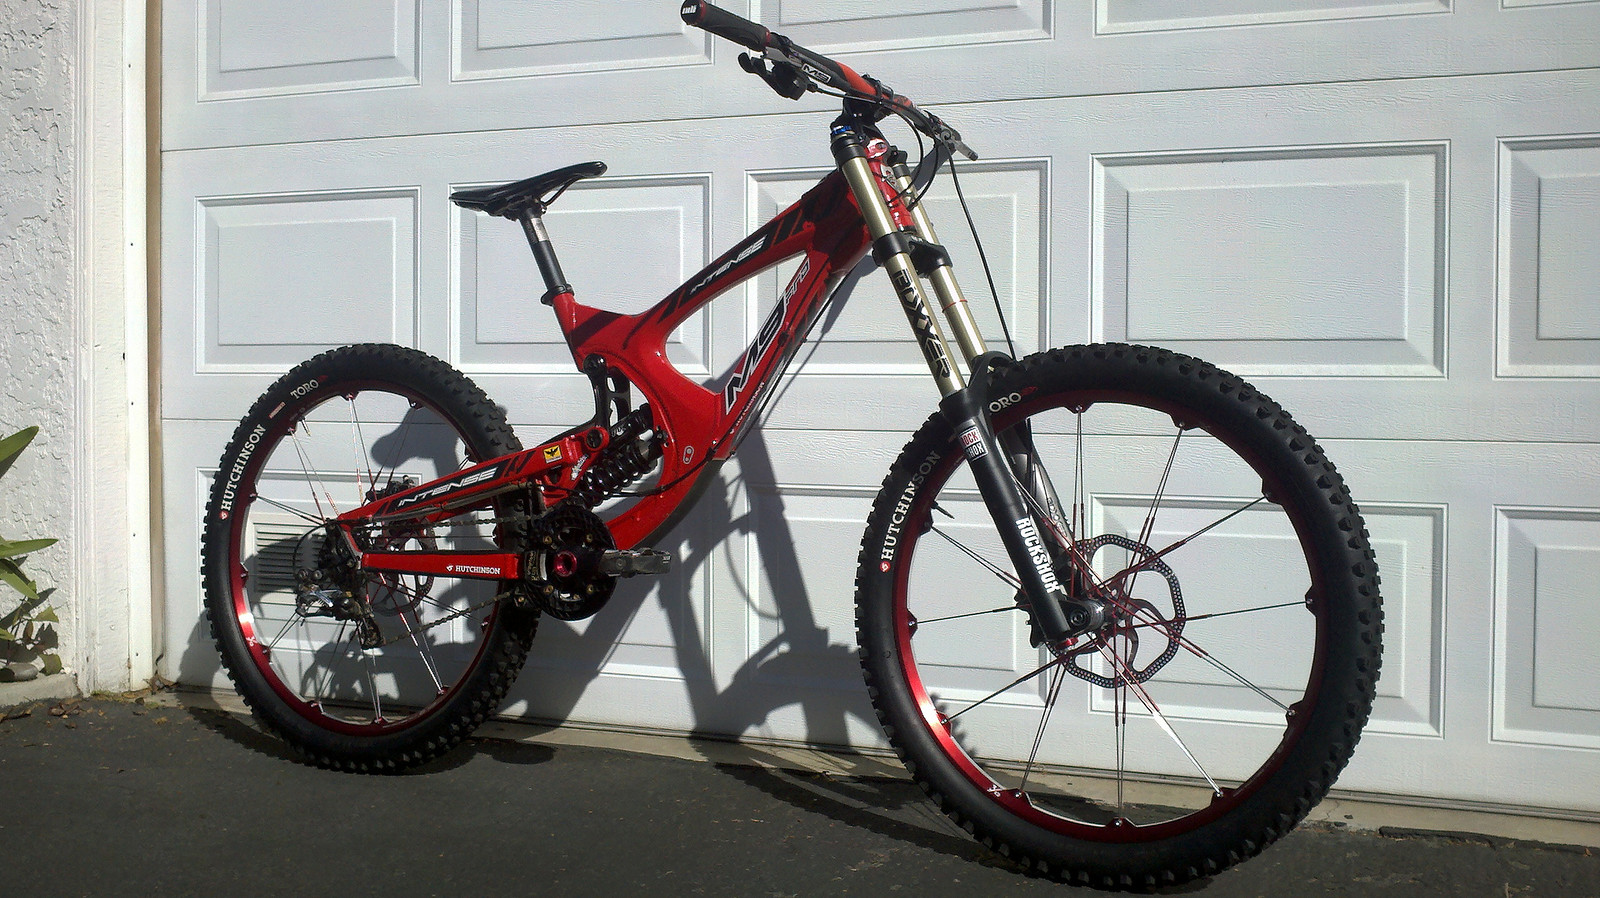 Updated 2013 Intense Bombers M9 - ozzer - Mountain Biking Pictures - Vital MTB